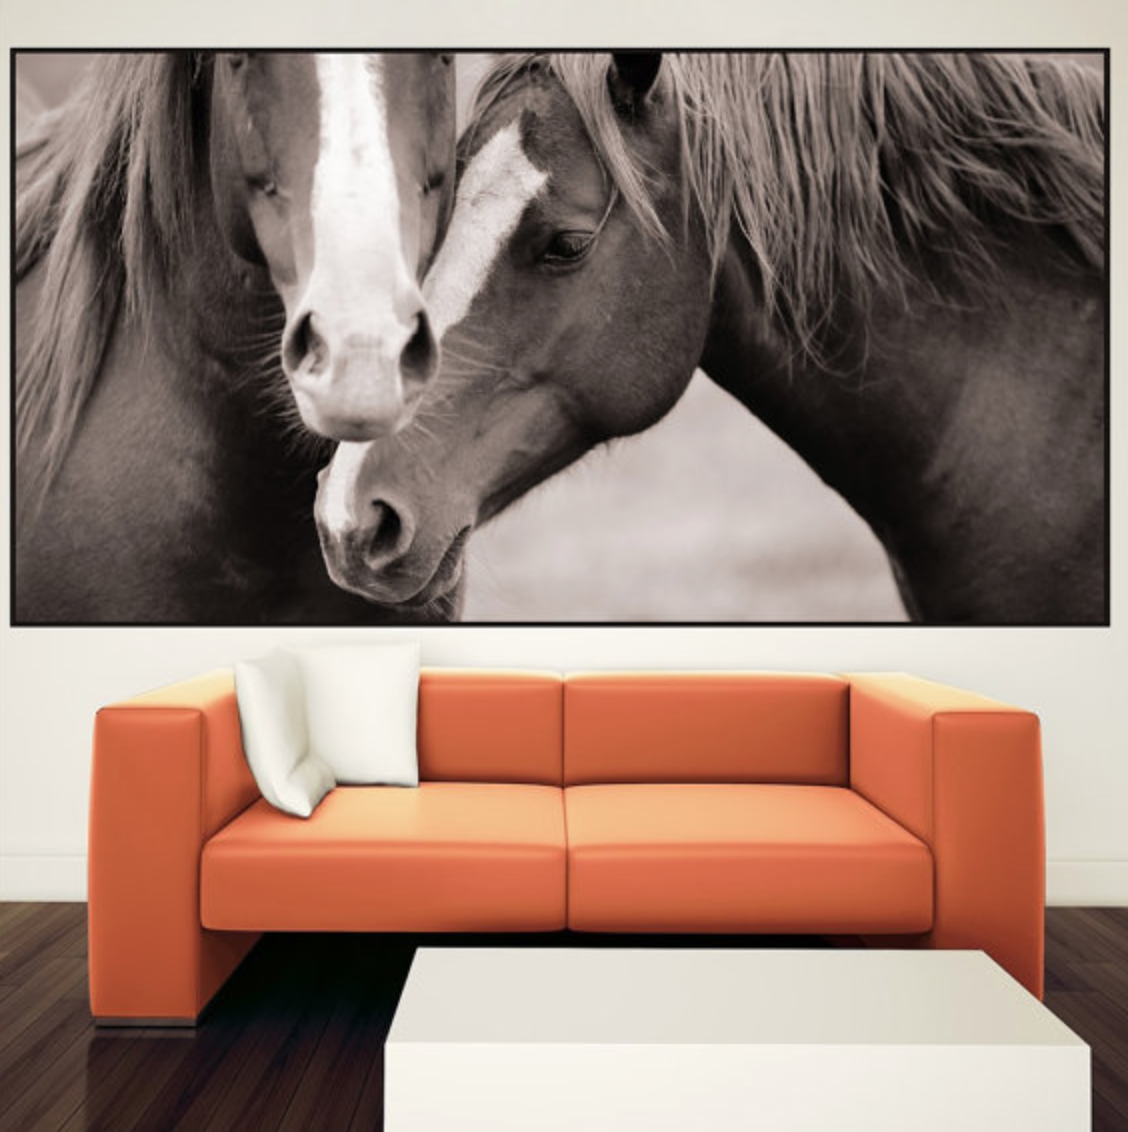 Cute Horse mural vinyl decal